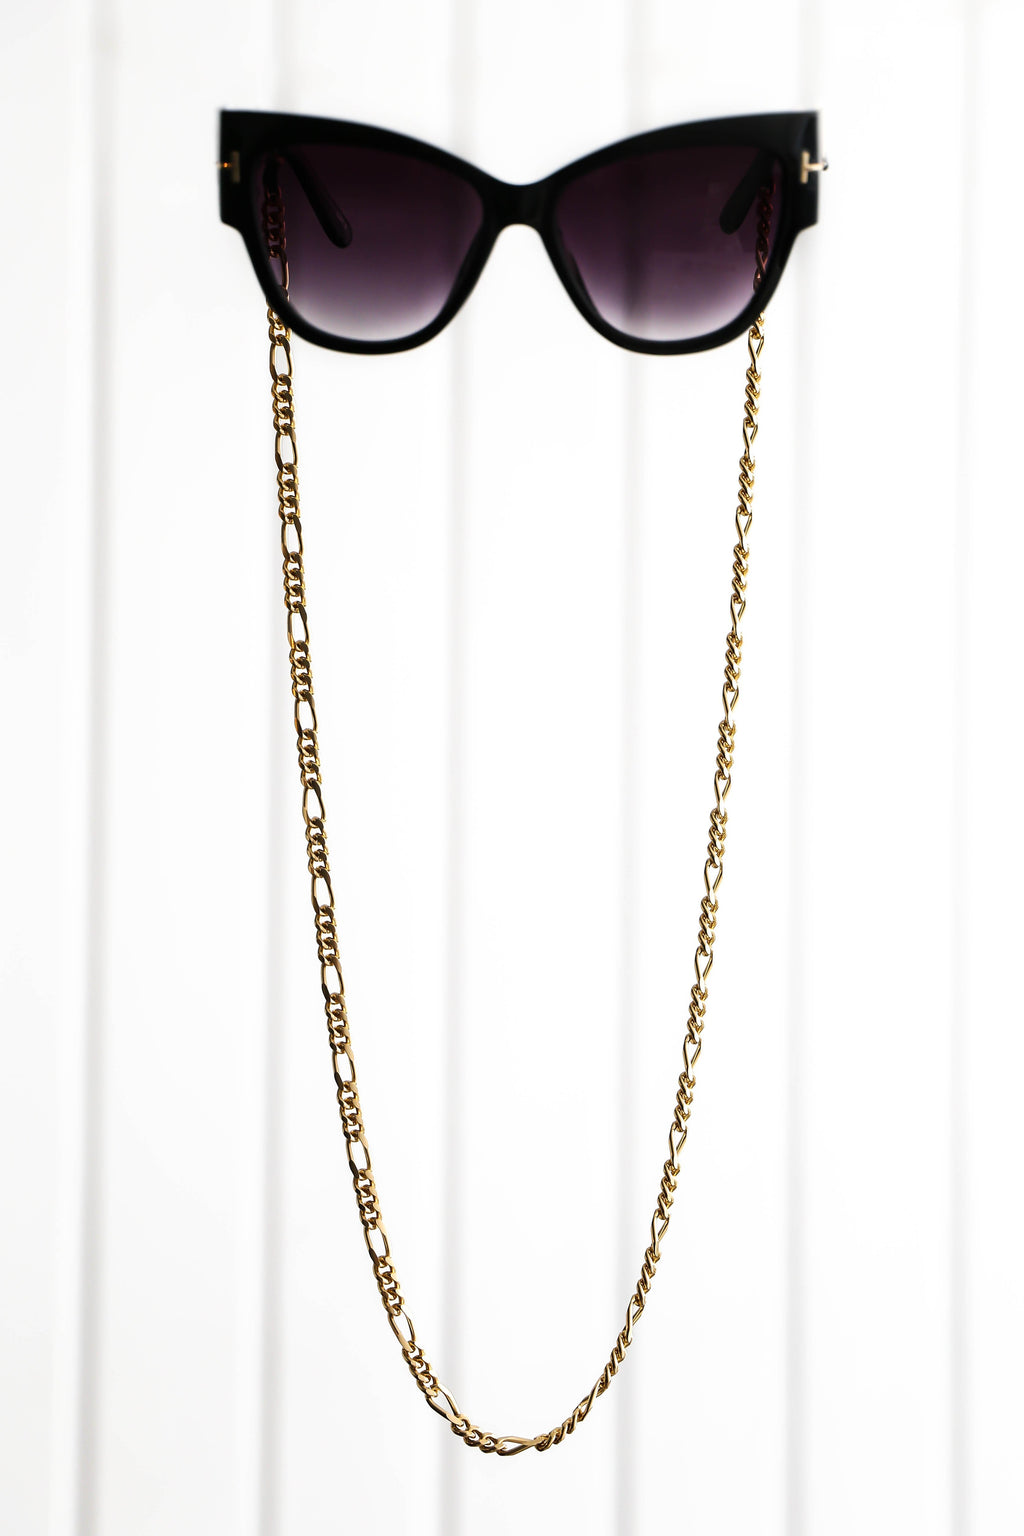 Vintage - Sunglasses Chain - Boutique Minimaliste